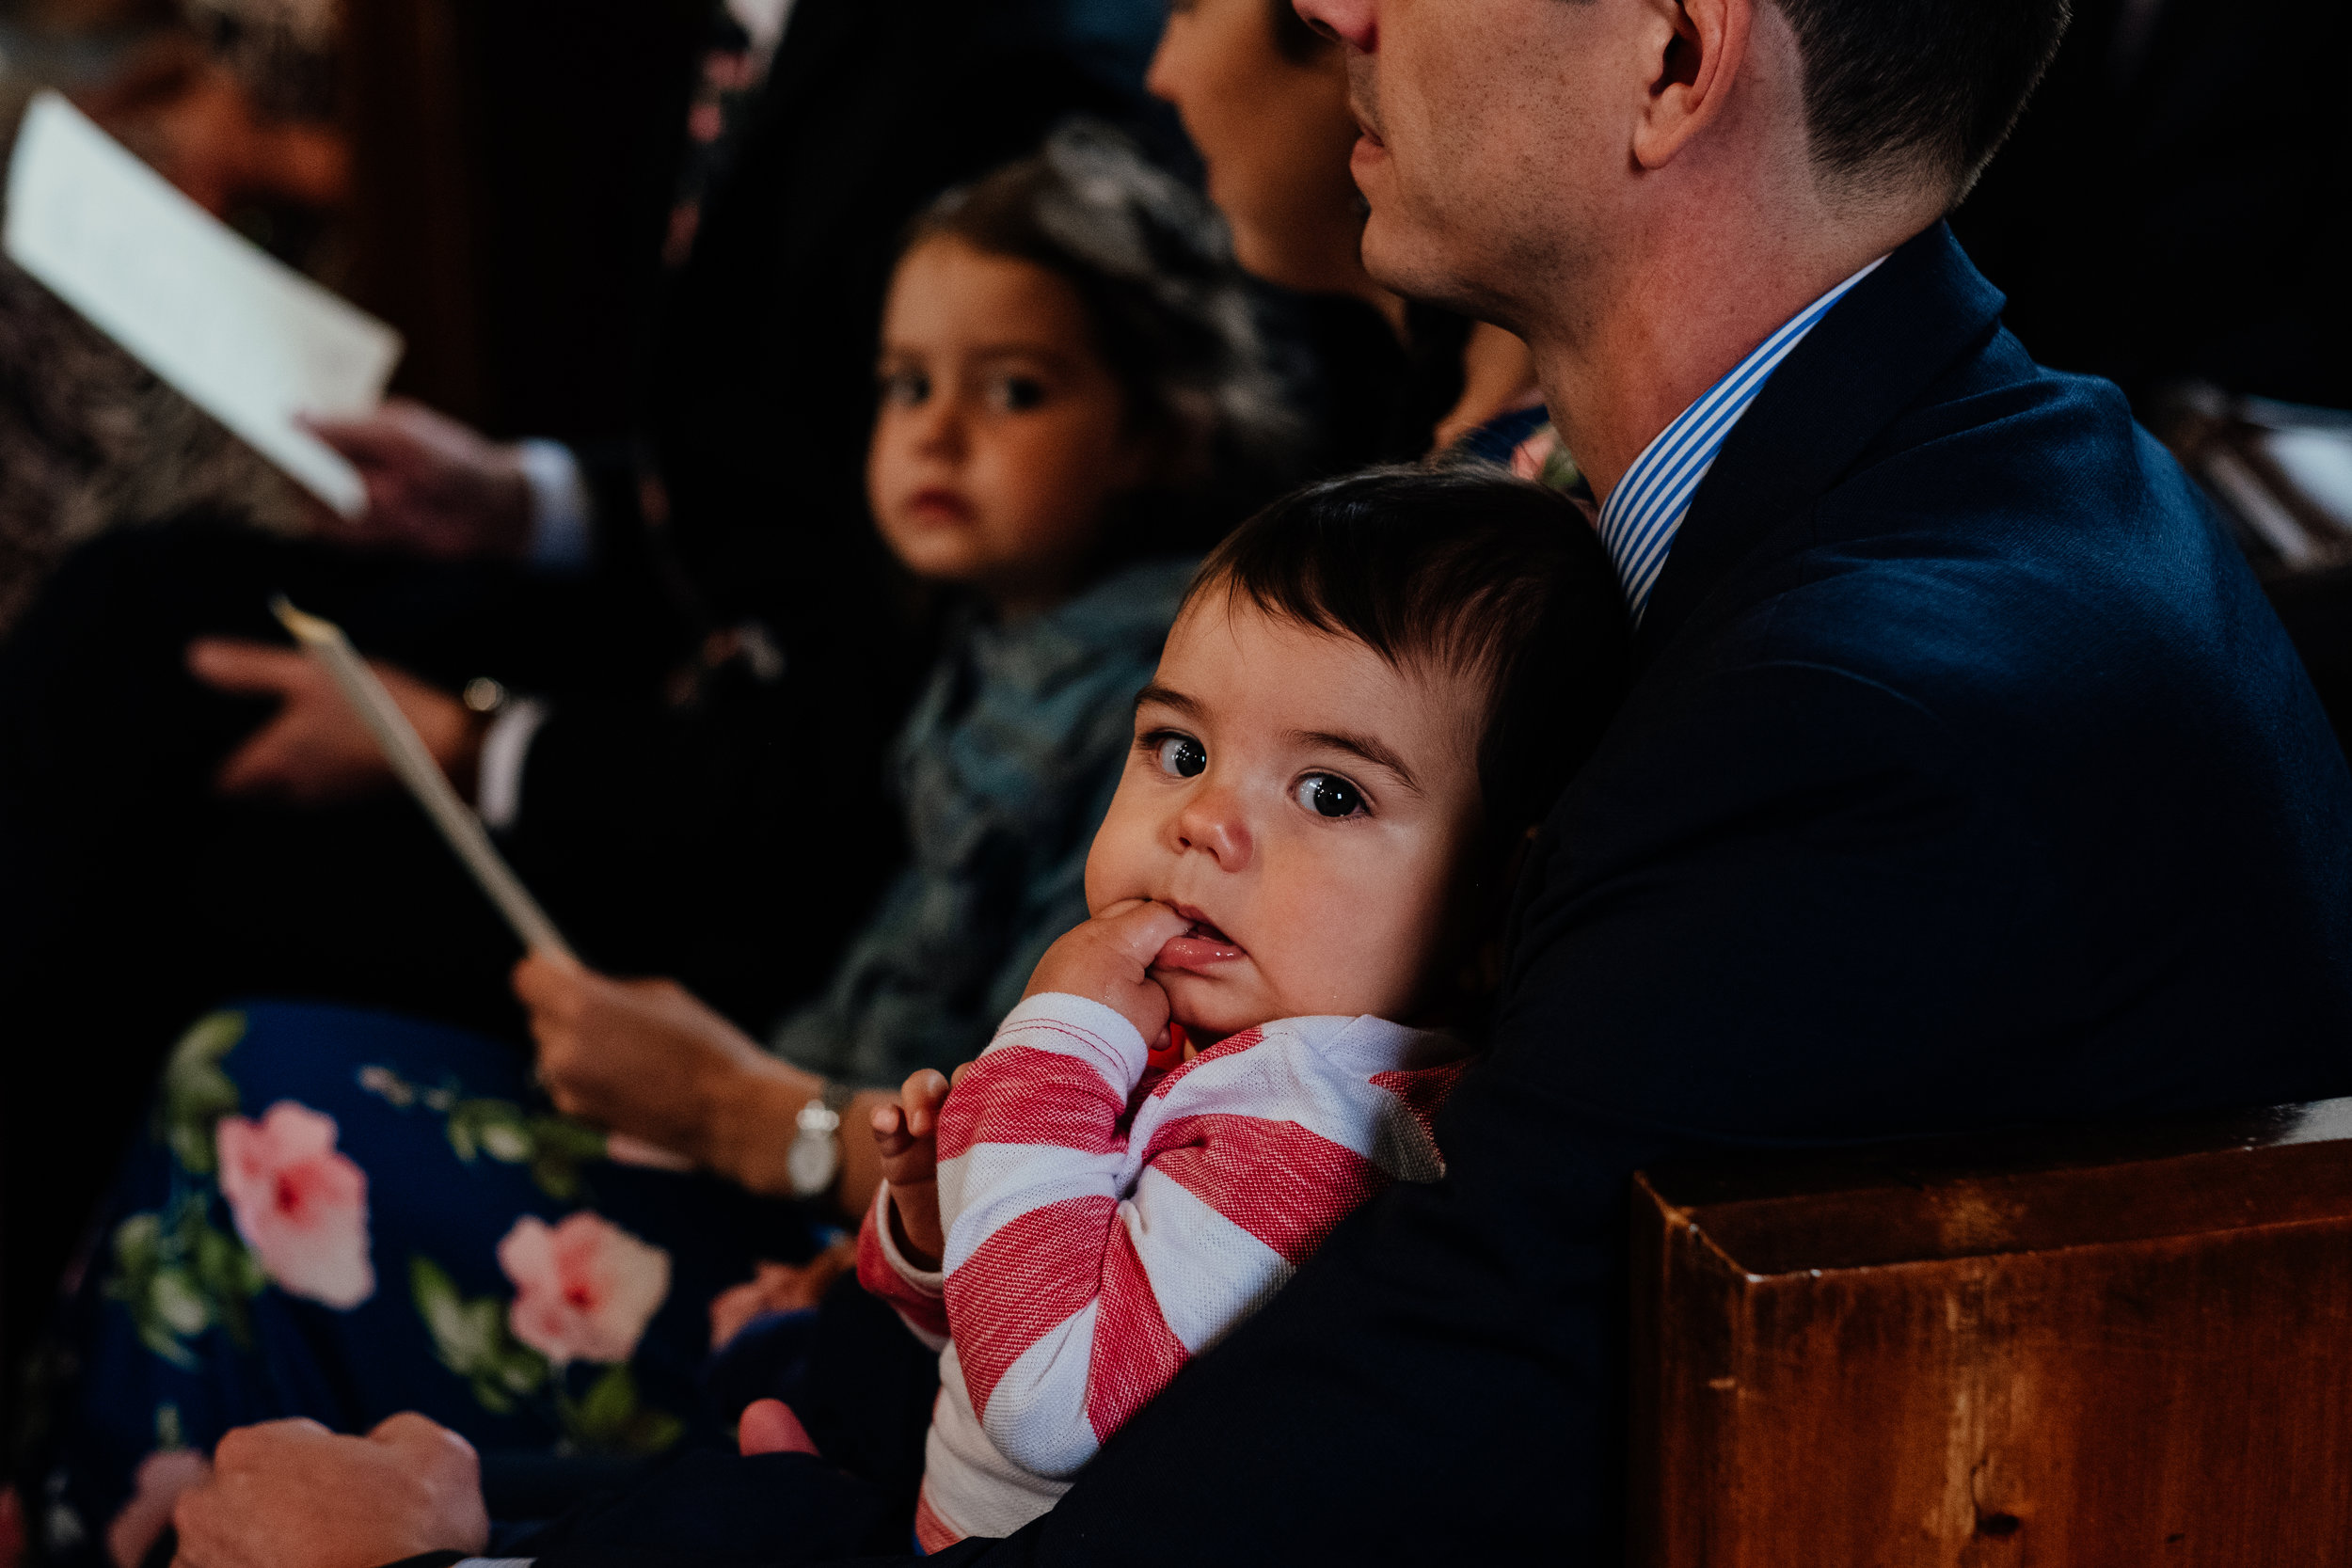 Cute toddler at wedding